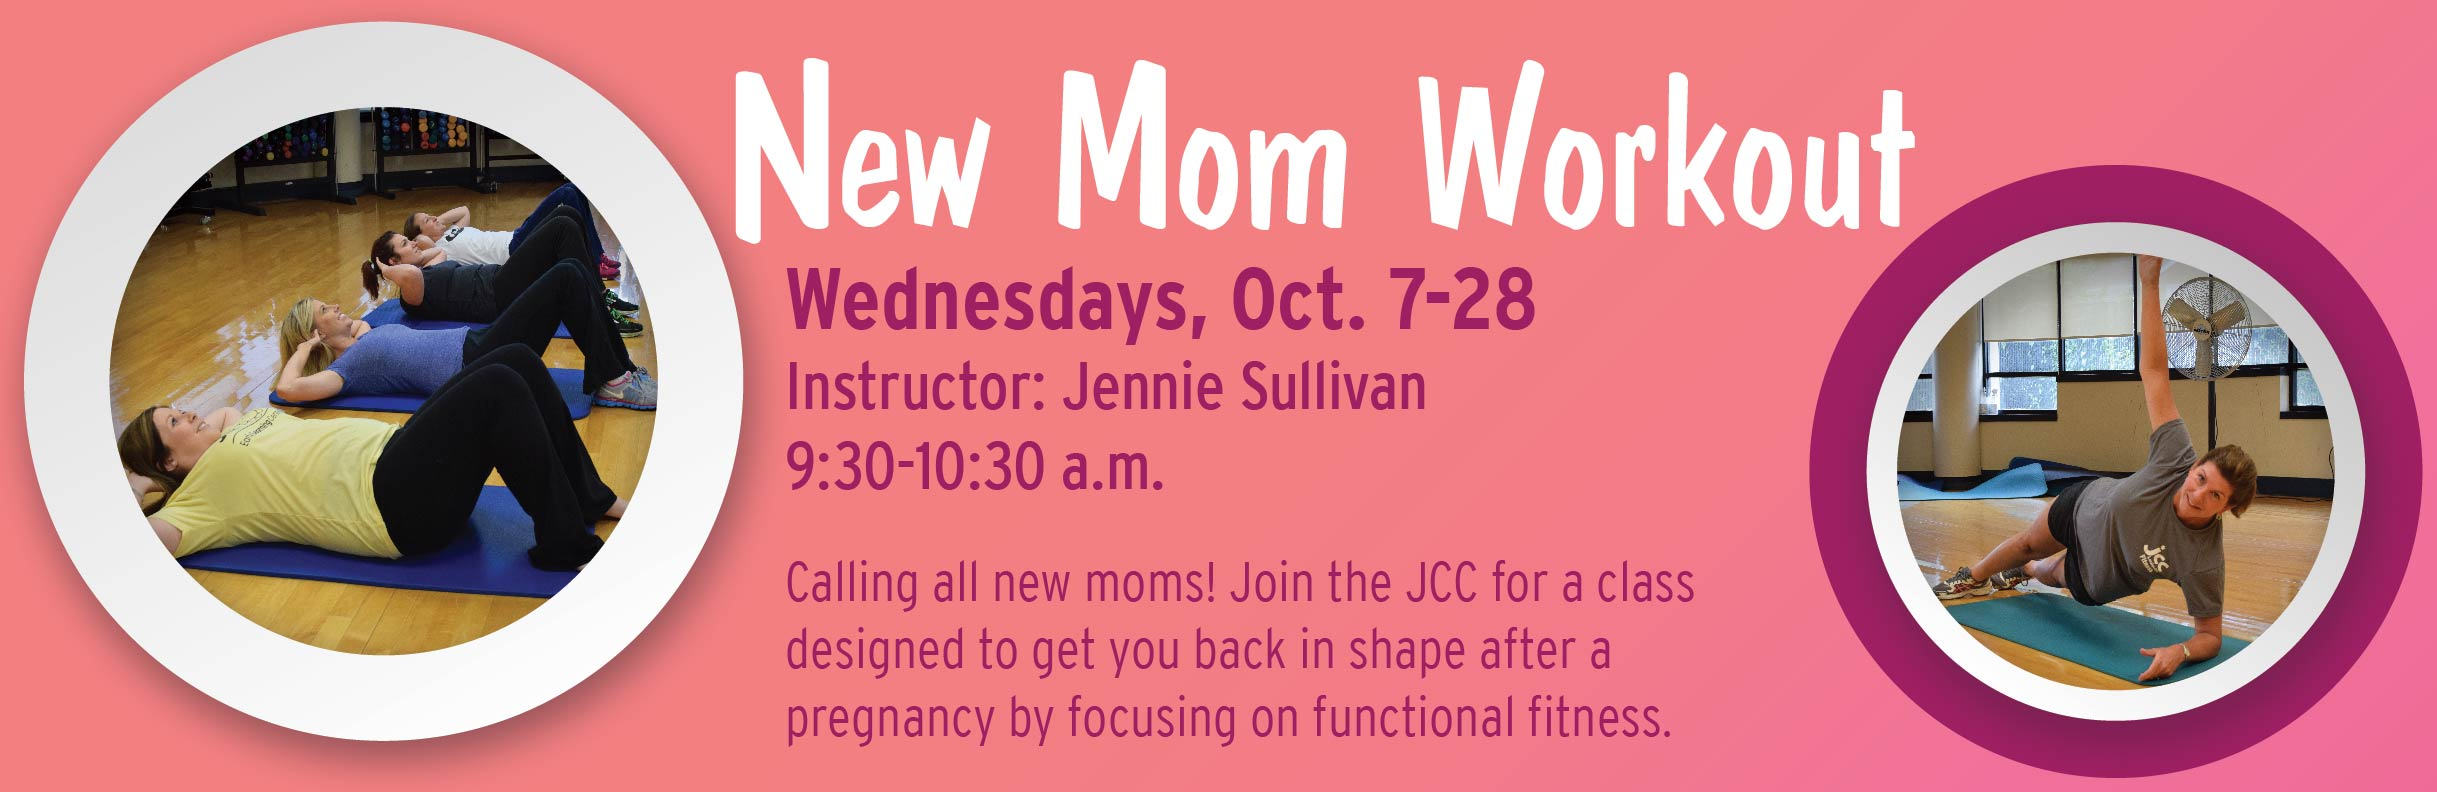 New Mom Workout